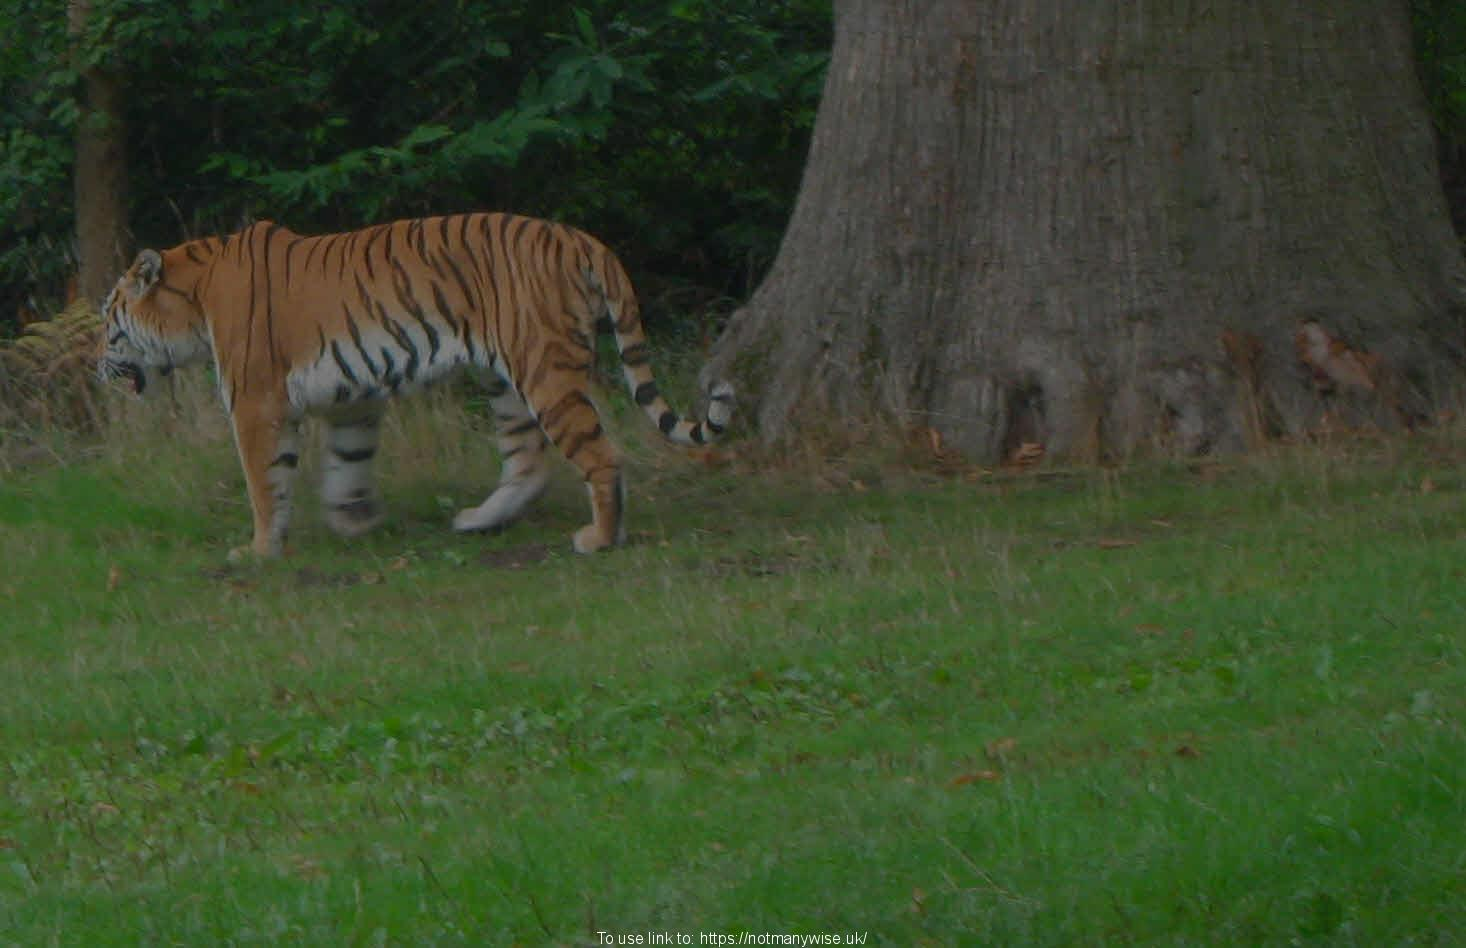 Tiger walking by trees.